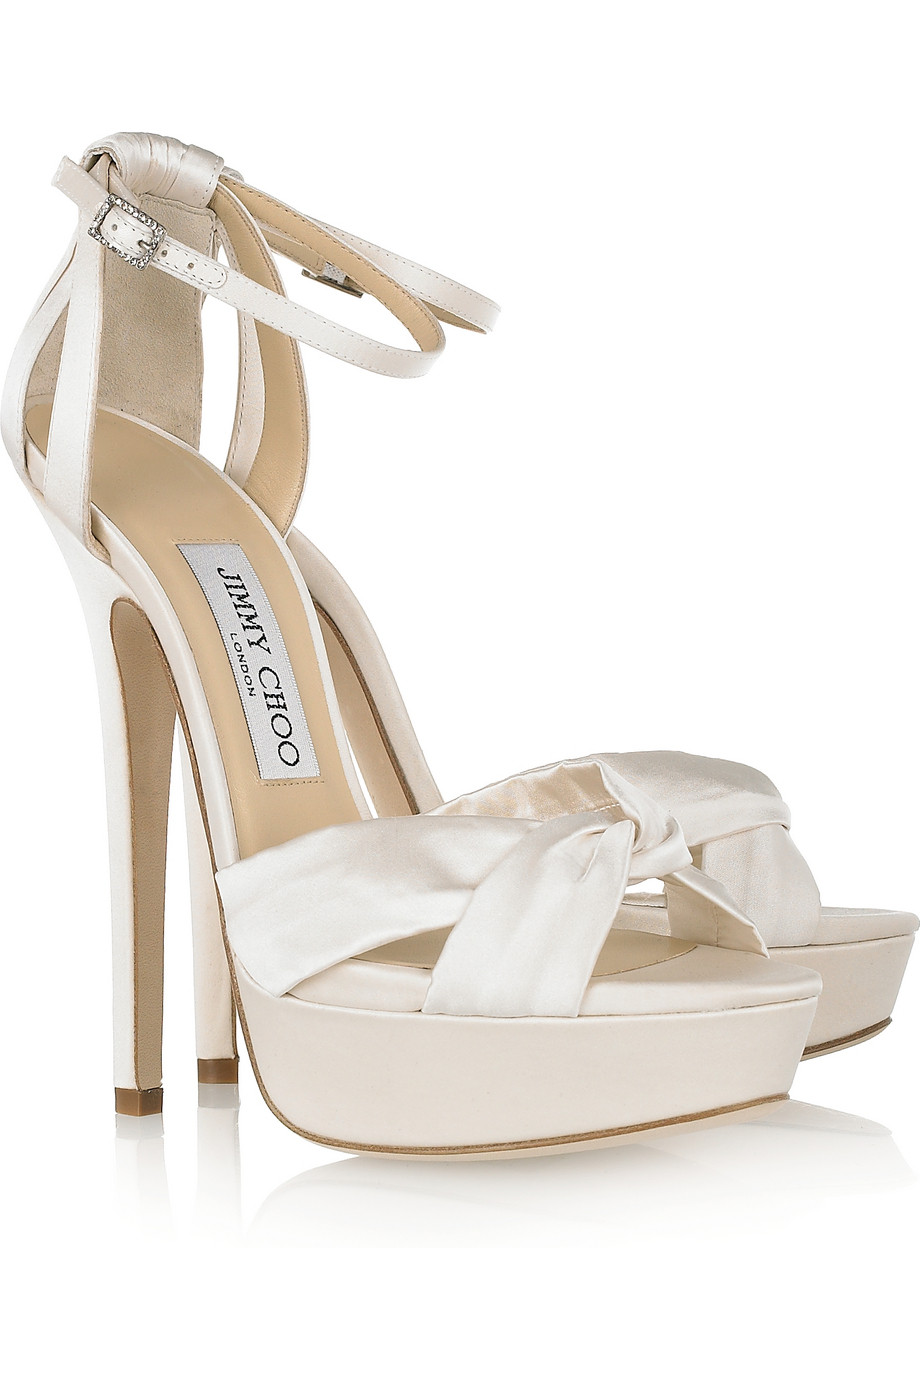 Jimmy Choo Fairy Satin Platform Sandals In Ivory White